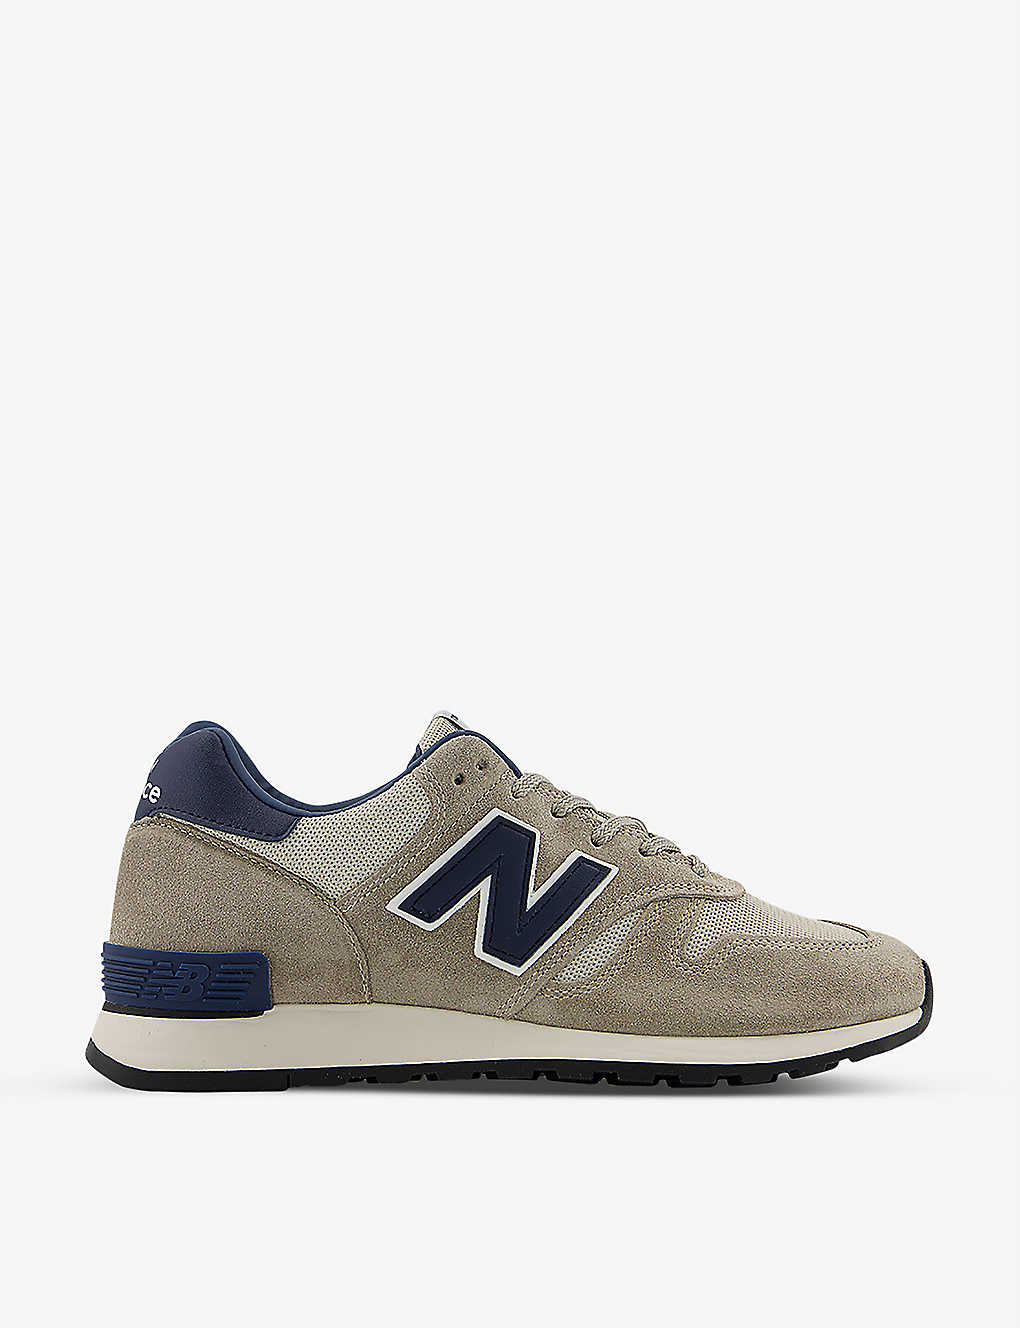 M670 branded suede and mesh trainers